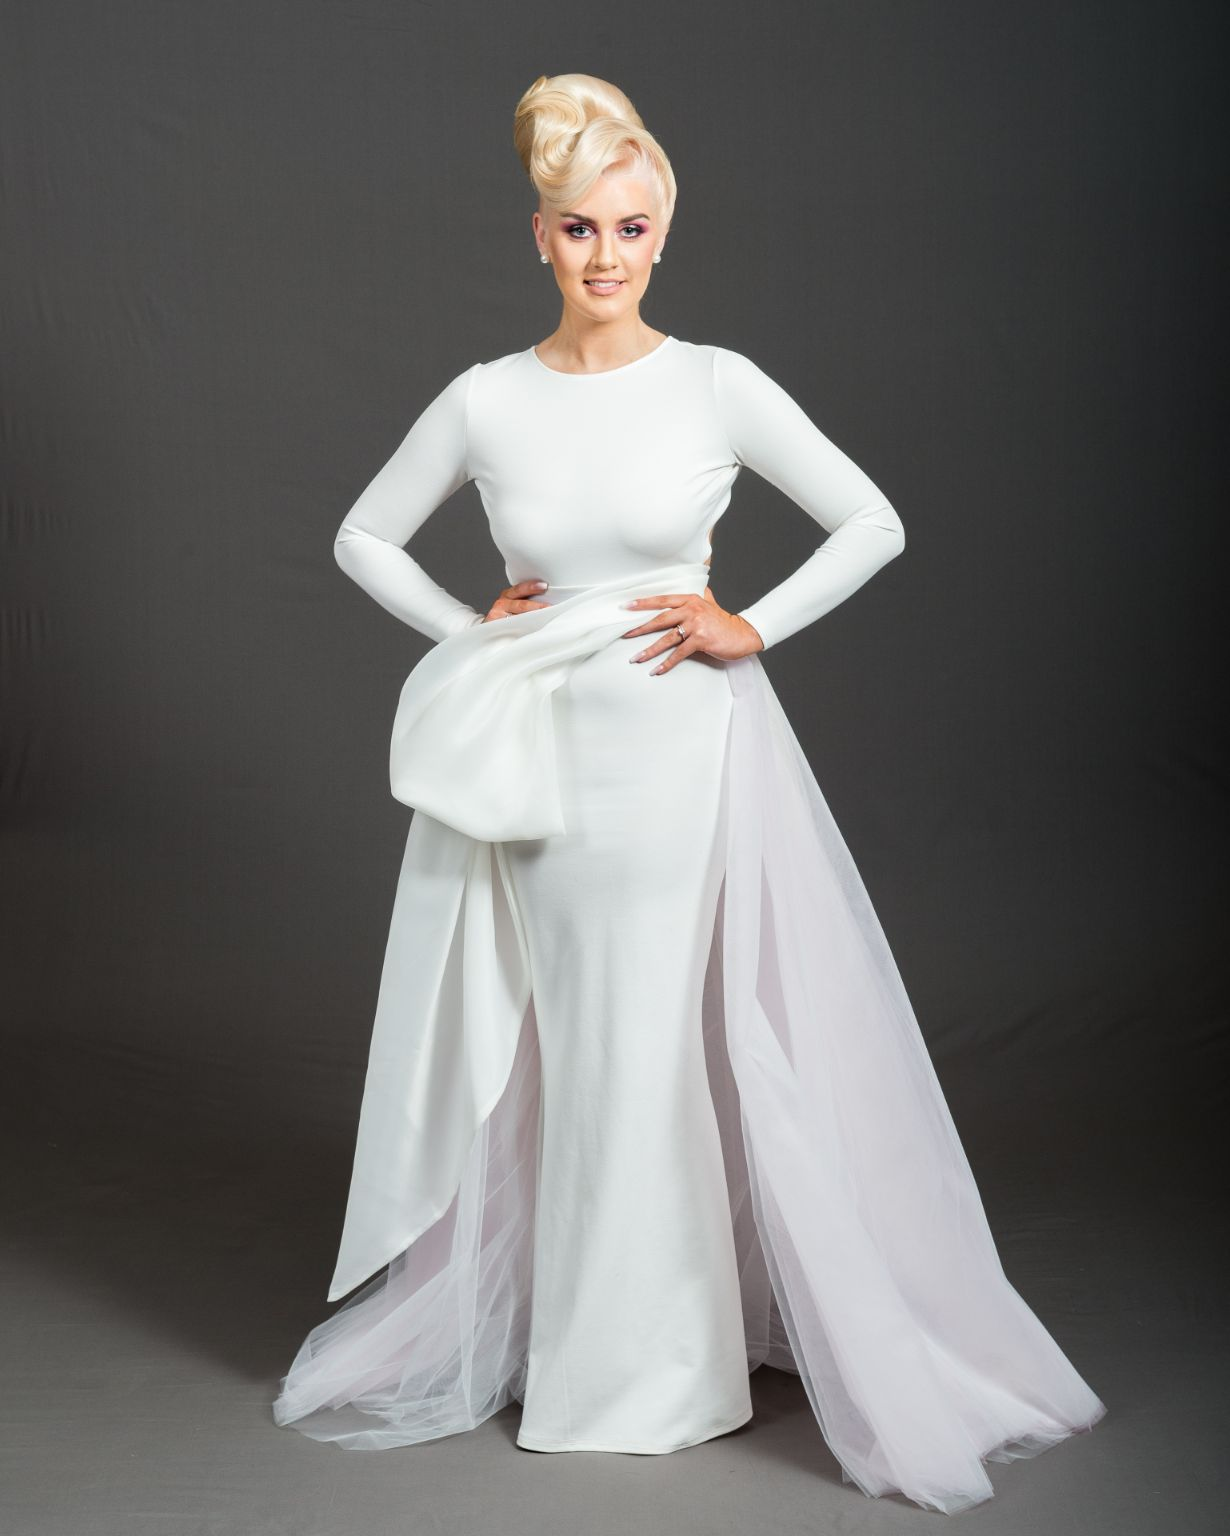 woman with blonde hair on upstyle wearing white dress